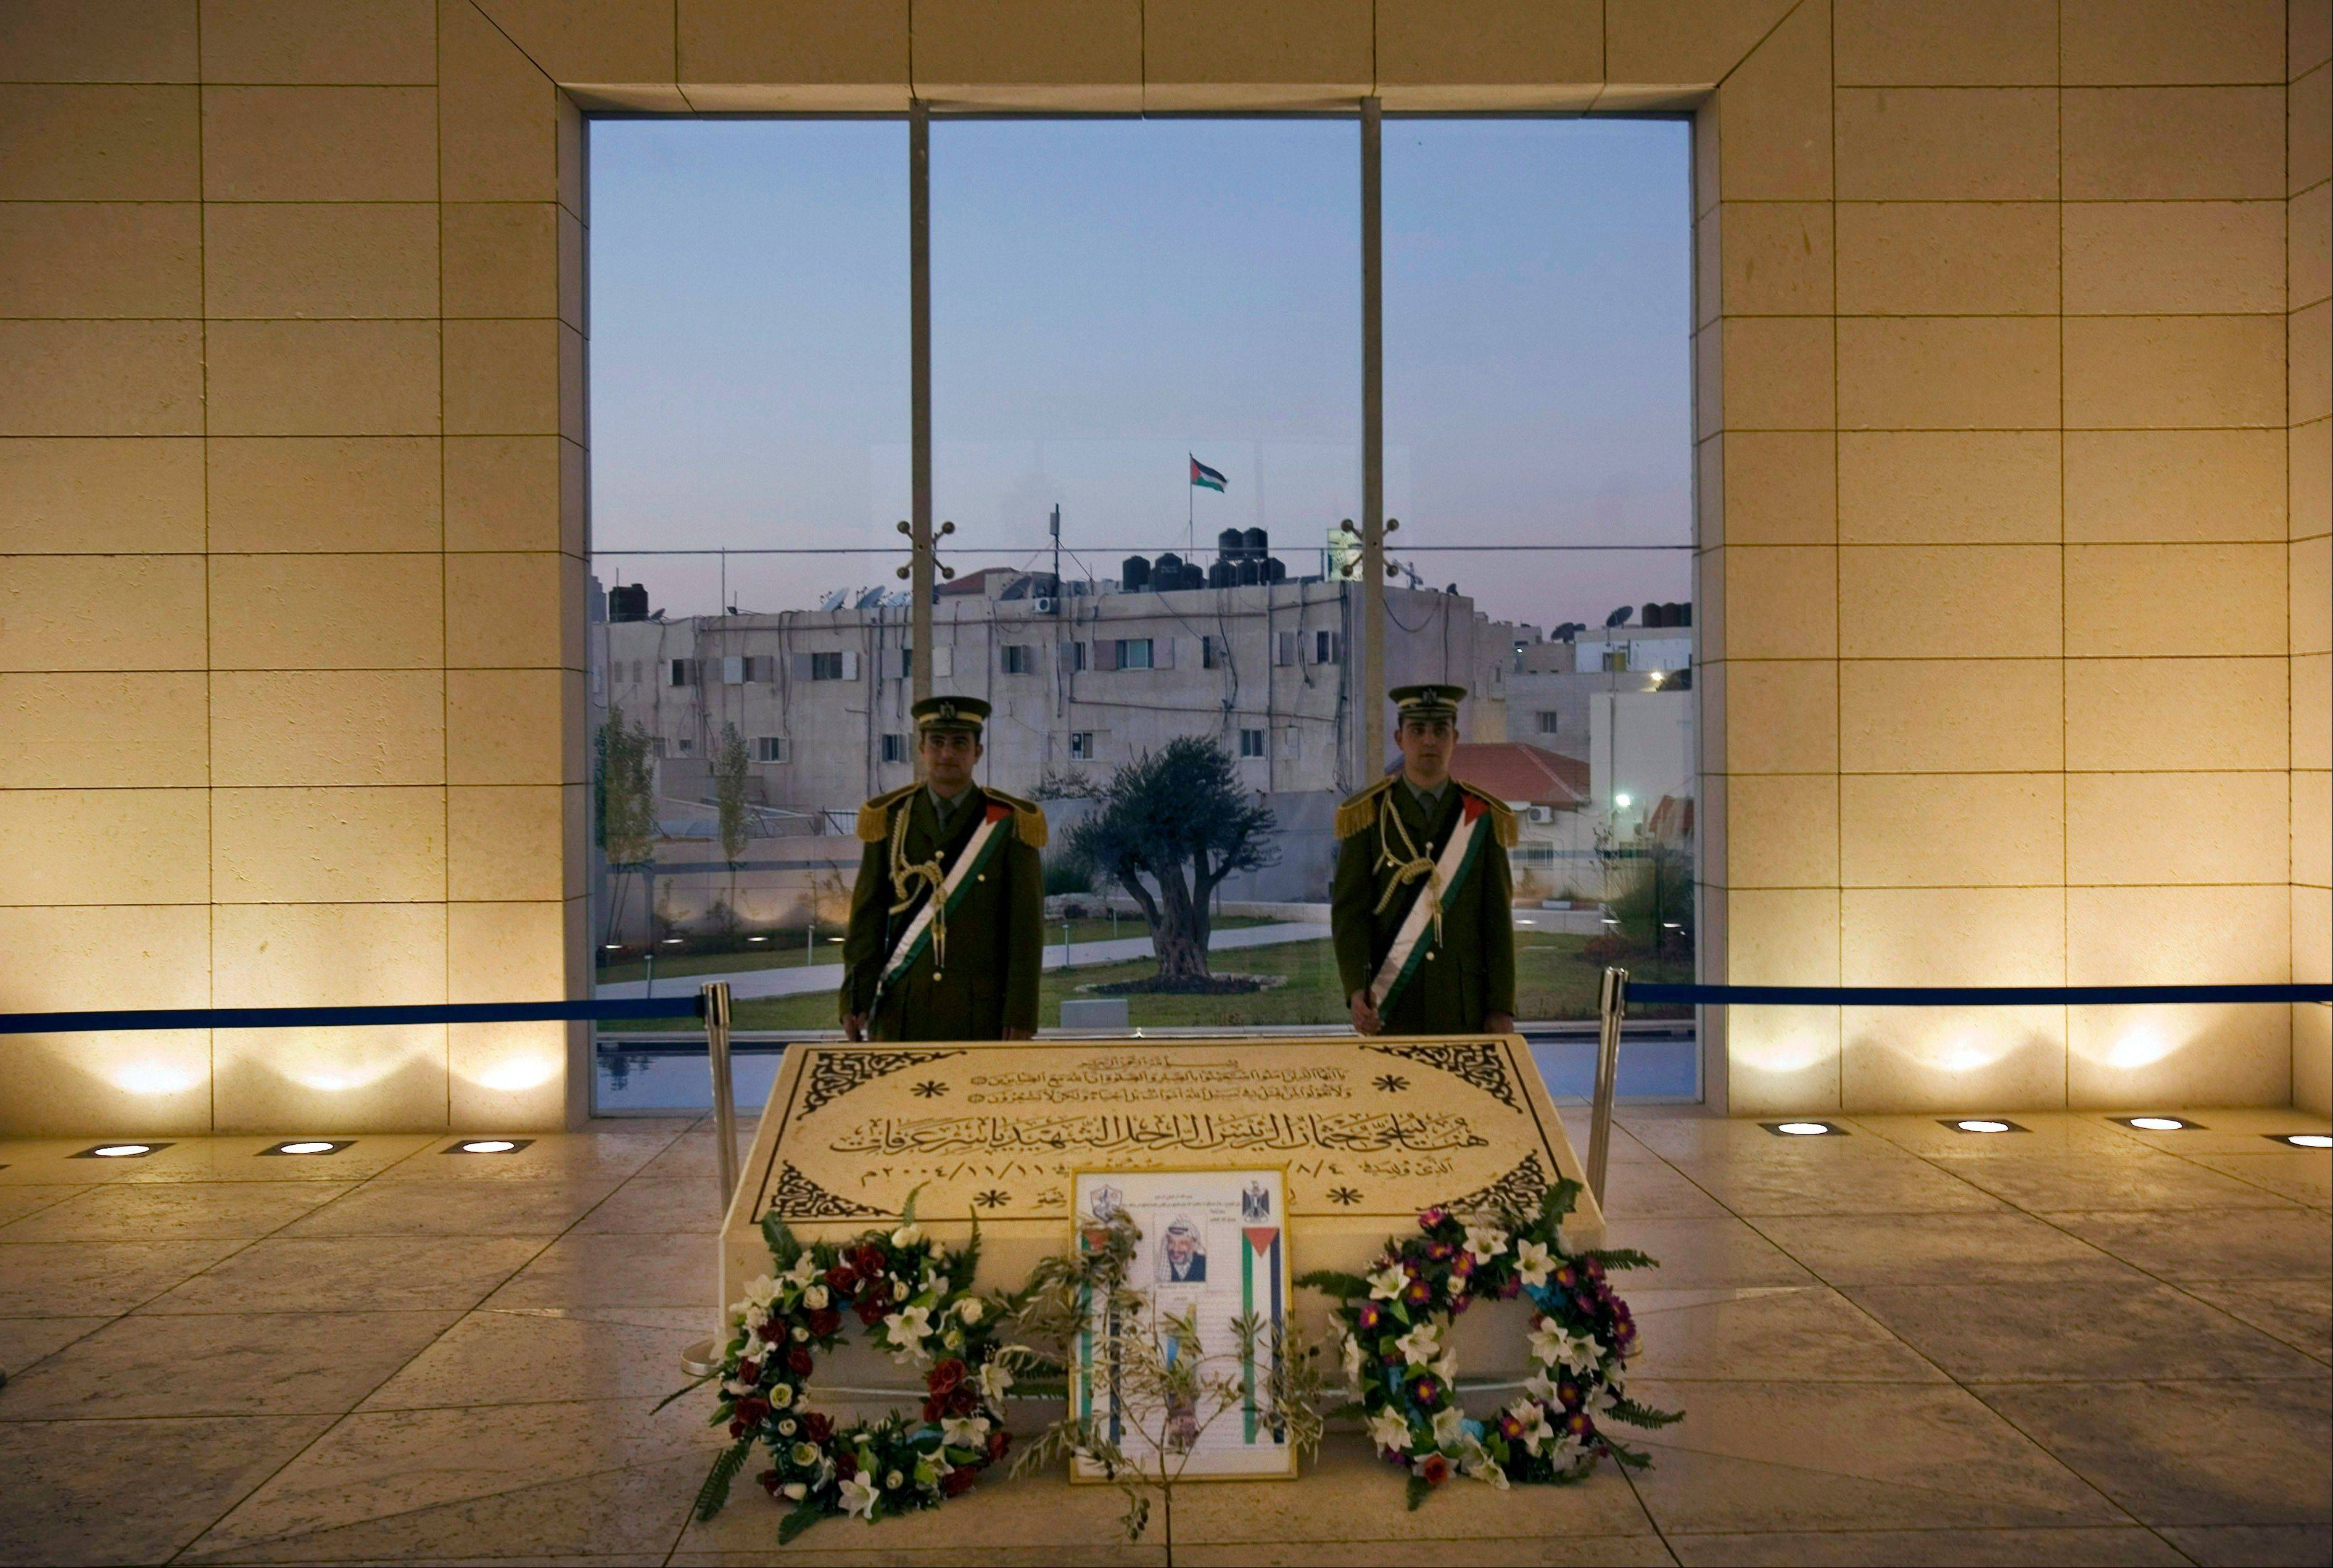 Members of the Palestinian Presidential Guard stand at the grave of the late leader Yasser Arafat in the West Bank city of Ramallah. Arafat�s remains will be exhumed Nov. 26, a Western diplomat said Monday, as investigators began determining how best to dig up the grave and extract samples.